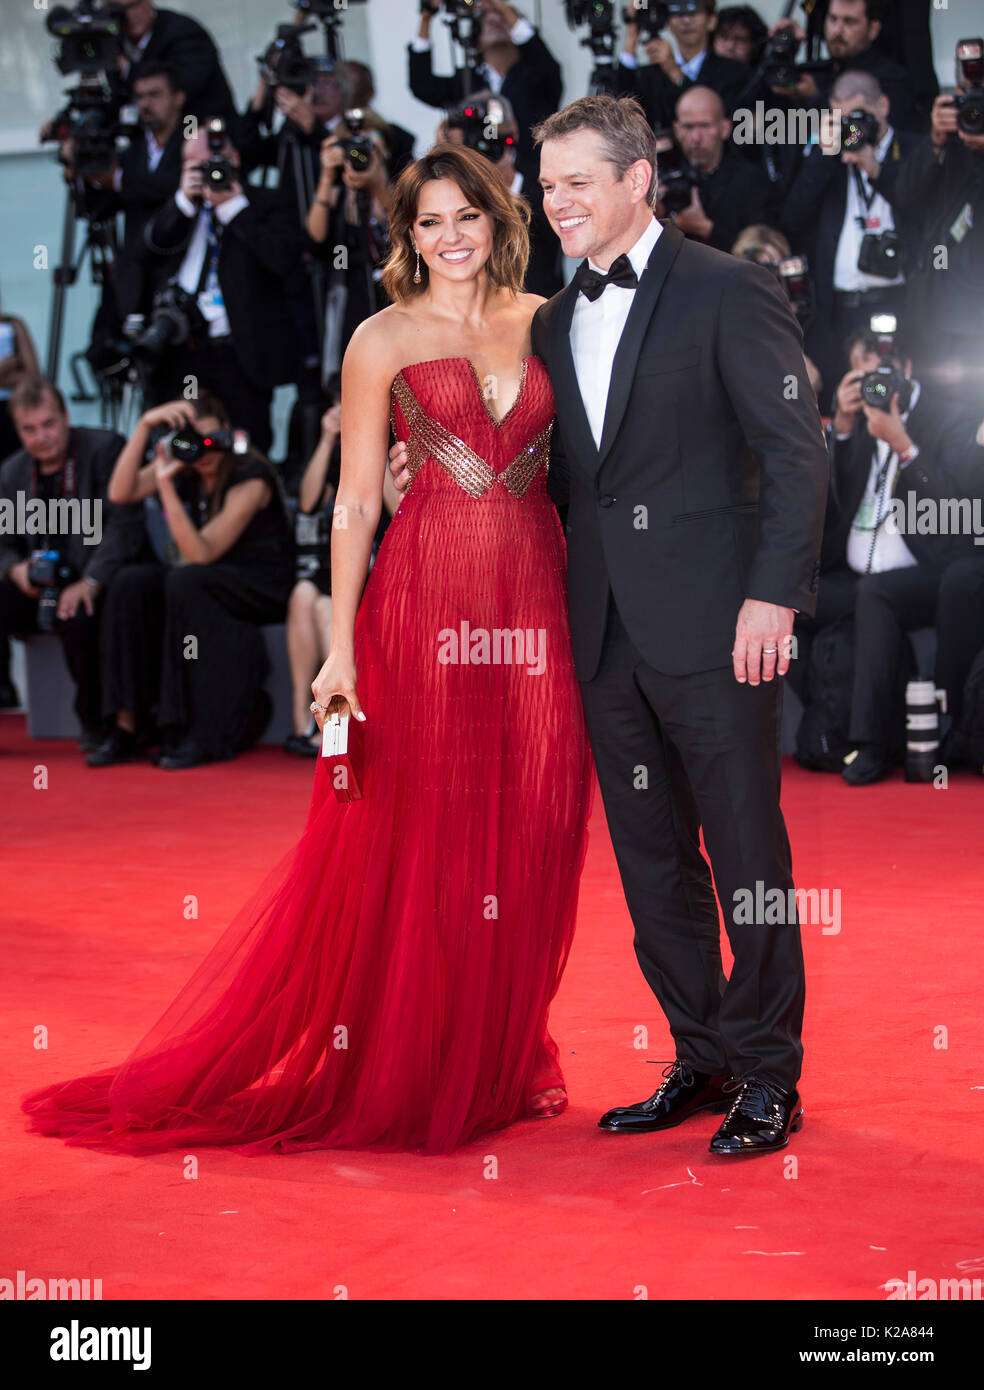 Venice, Italy. 30th Aug, 2017. Actor Matt Damon and his wife Luciana Barroso arrive on the red carpet of the premiere of the film 'Downsizing' which opens the 74th edition of the Venice Film Festival in Venice, Italy, on Aug. 30, 2017. The 74th edition of the Venice Film Festival lasts from Aug. 30 to Sept. 9. Credit: Jin Yu/Xinhua/Alamy Live News - Stock Image